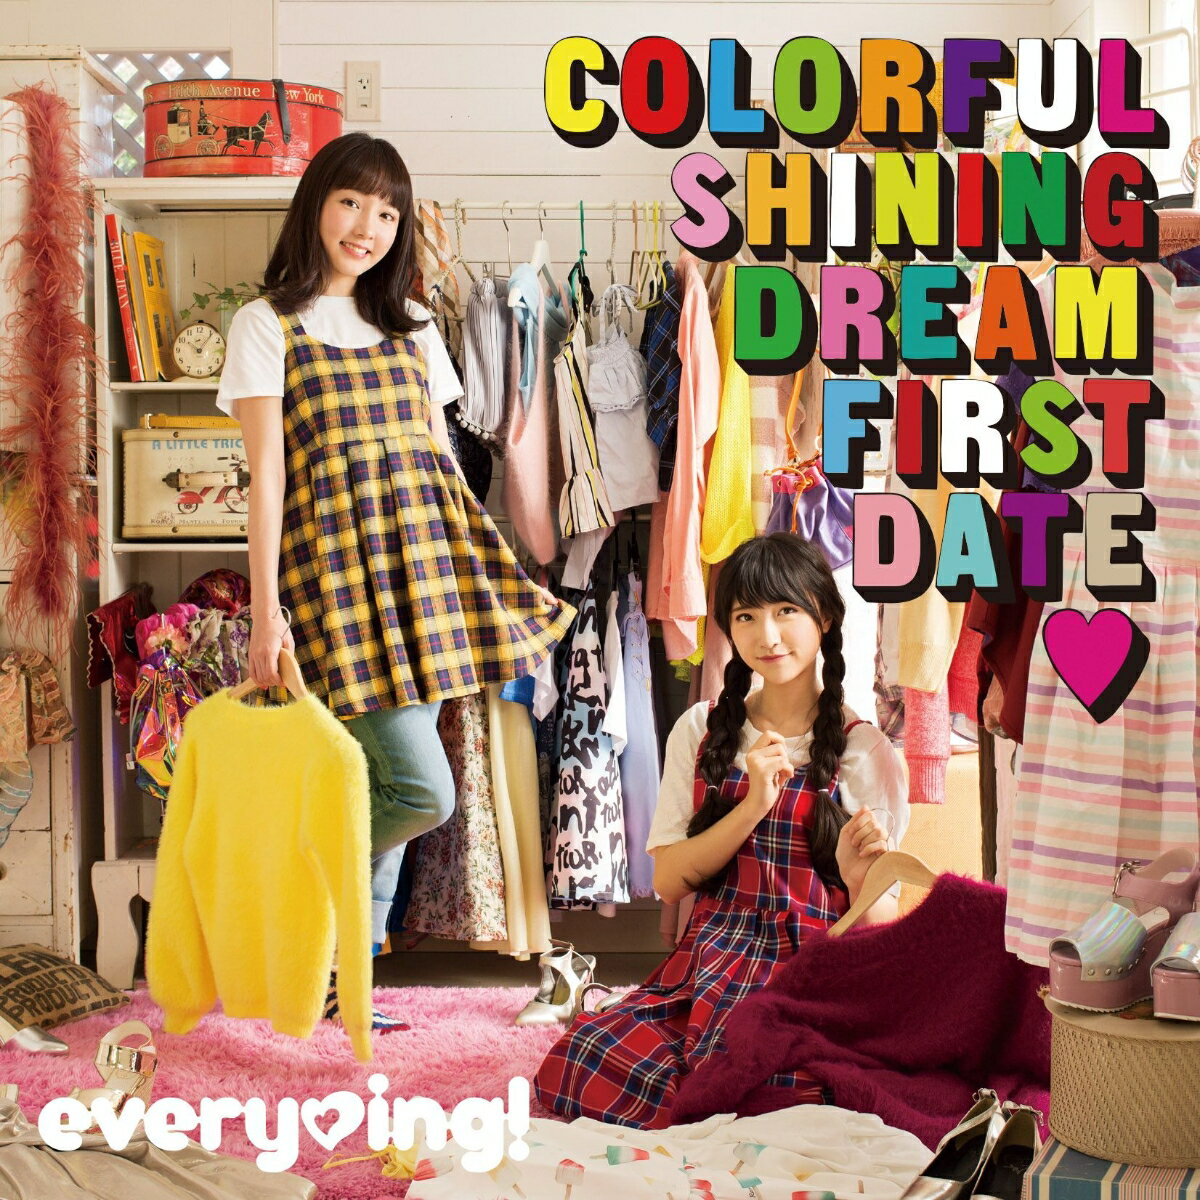 Colorful Shining Dream First Date? [ every ing! ]